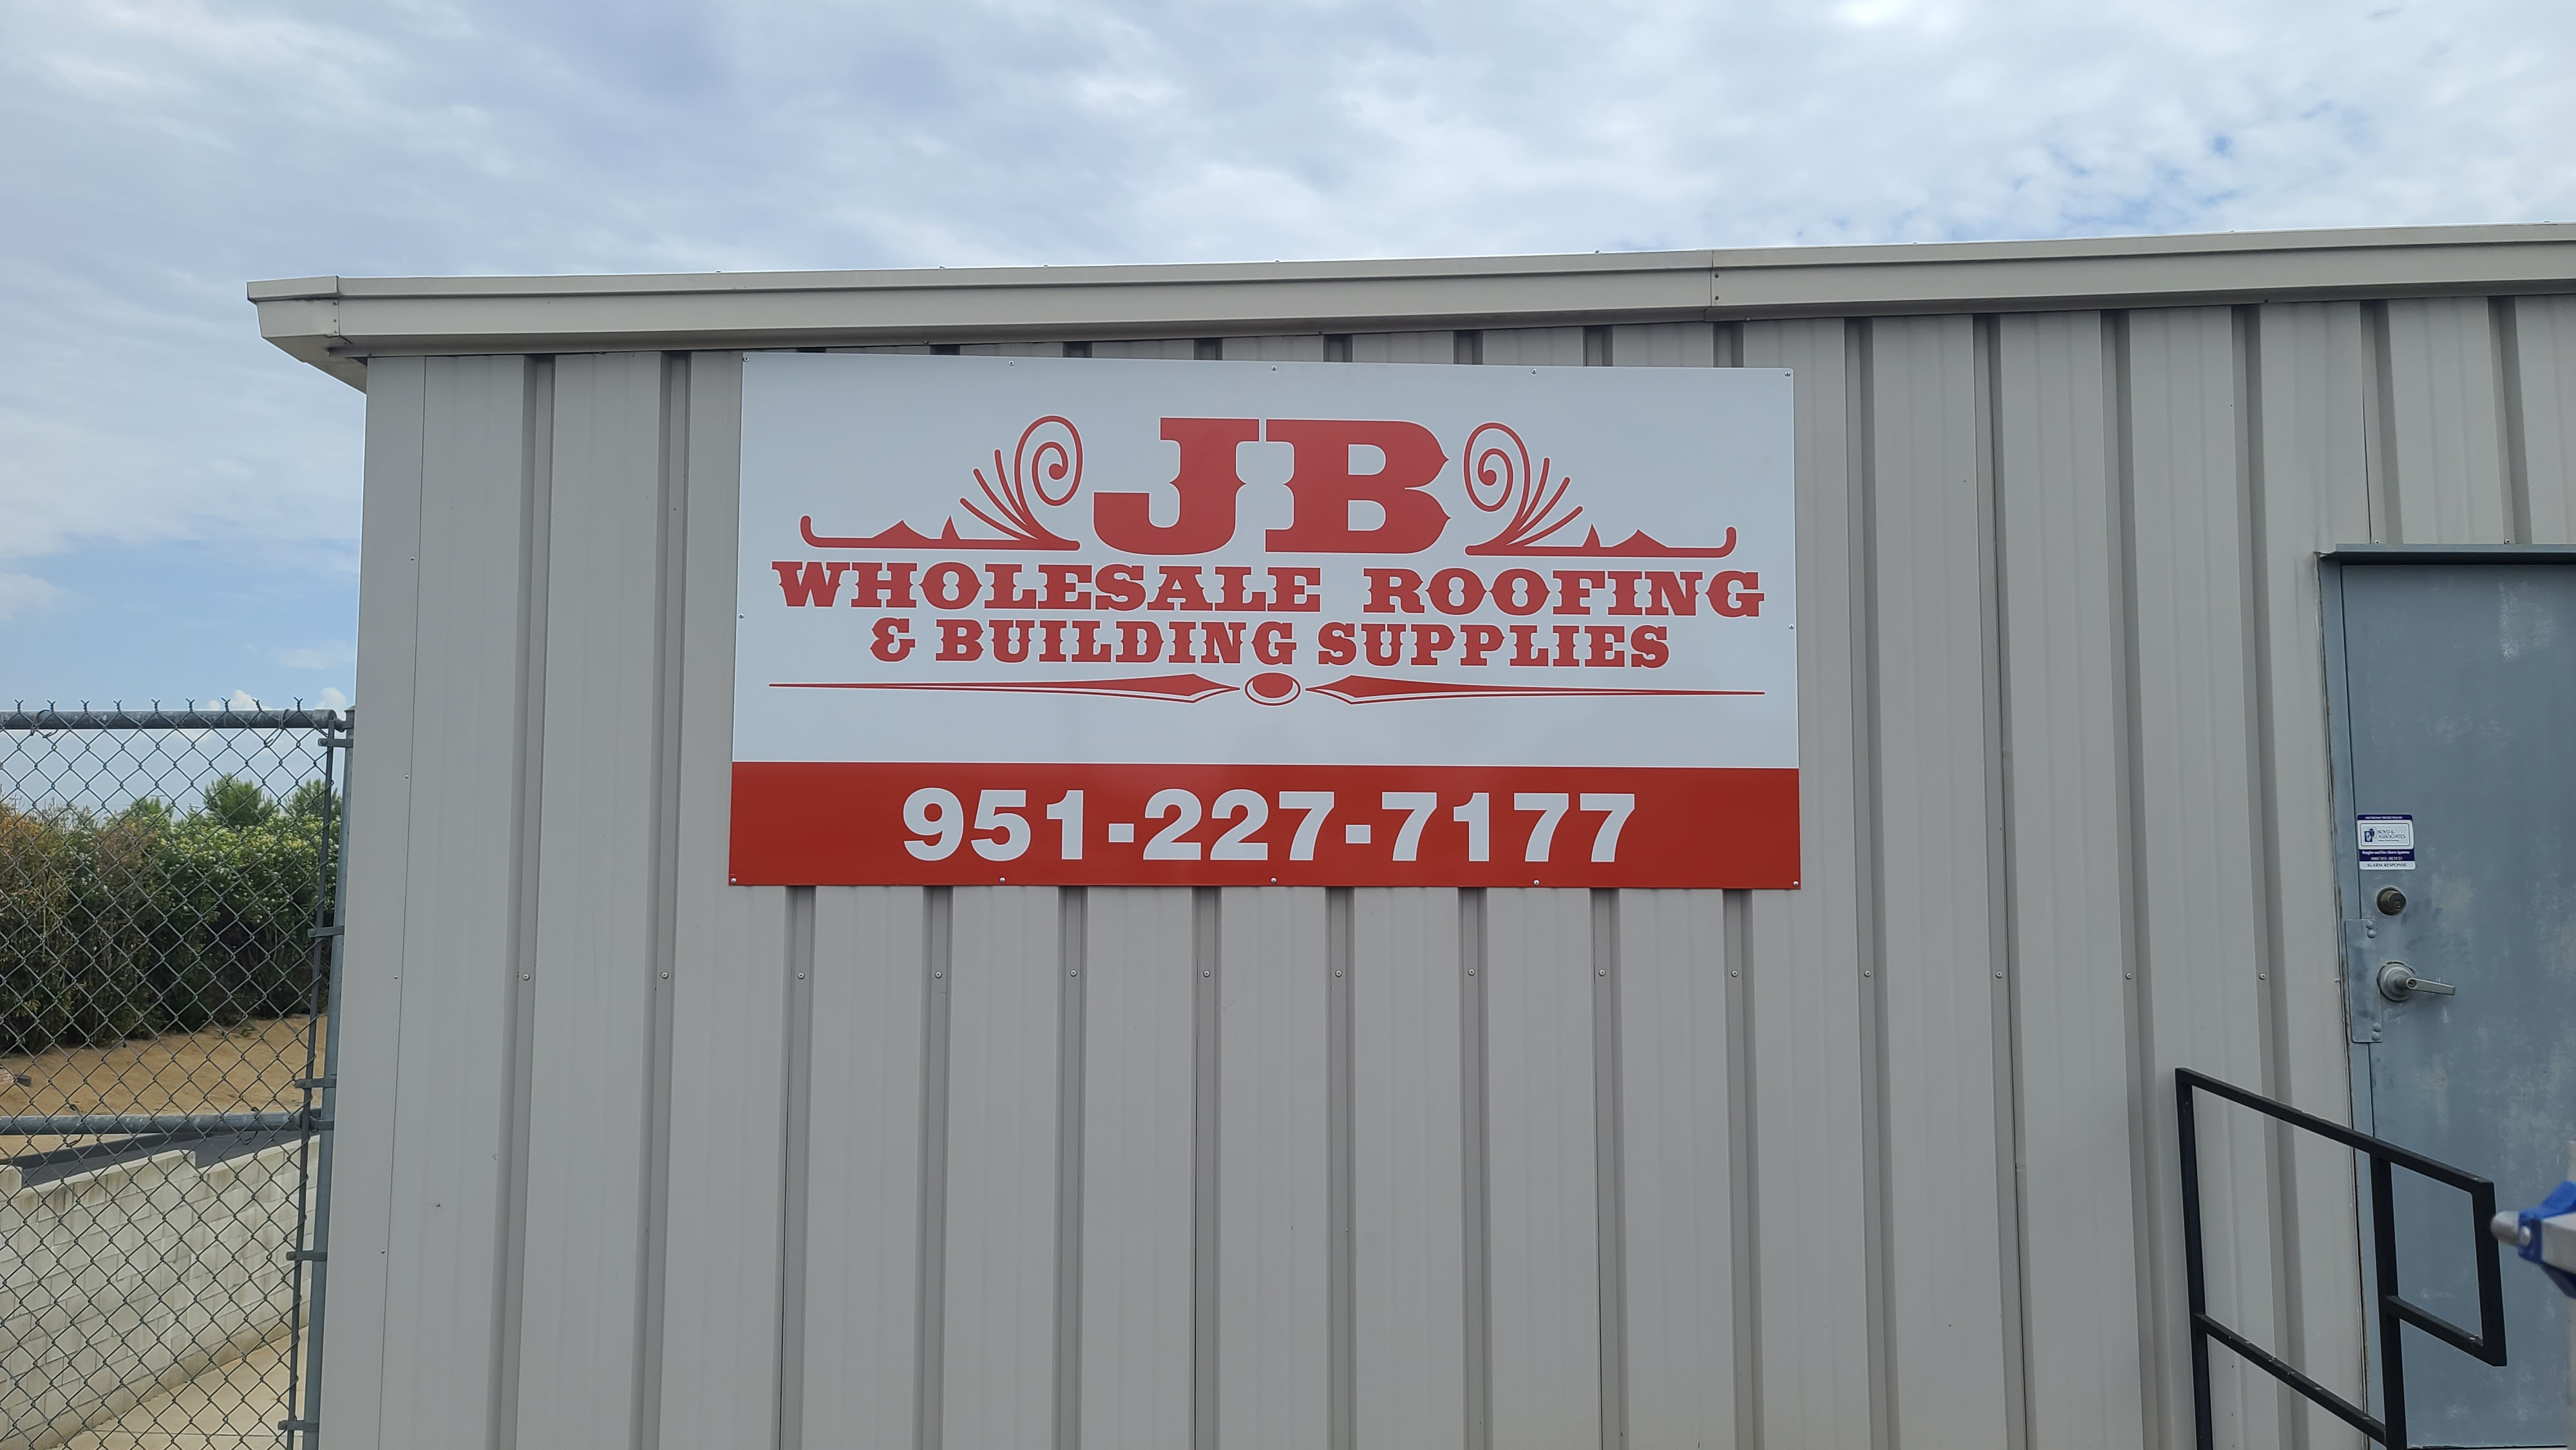 This metal panel sign for JB Wholesale Roofing's parking lot in Murietta features their logo and contact details, giving their brand more visibility.